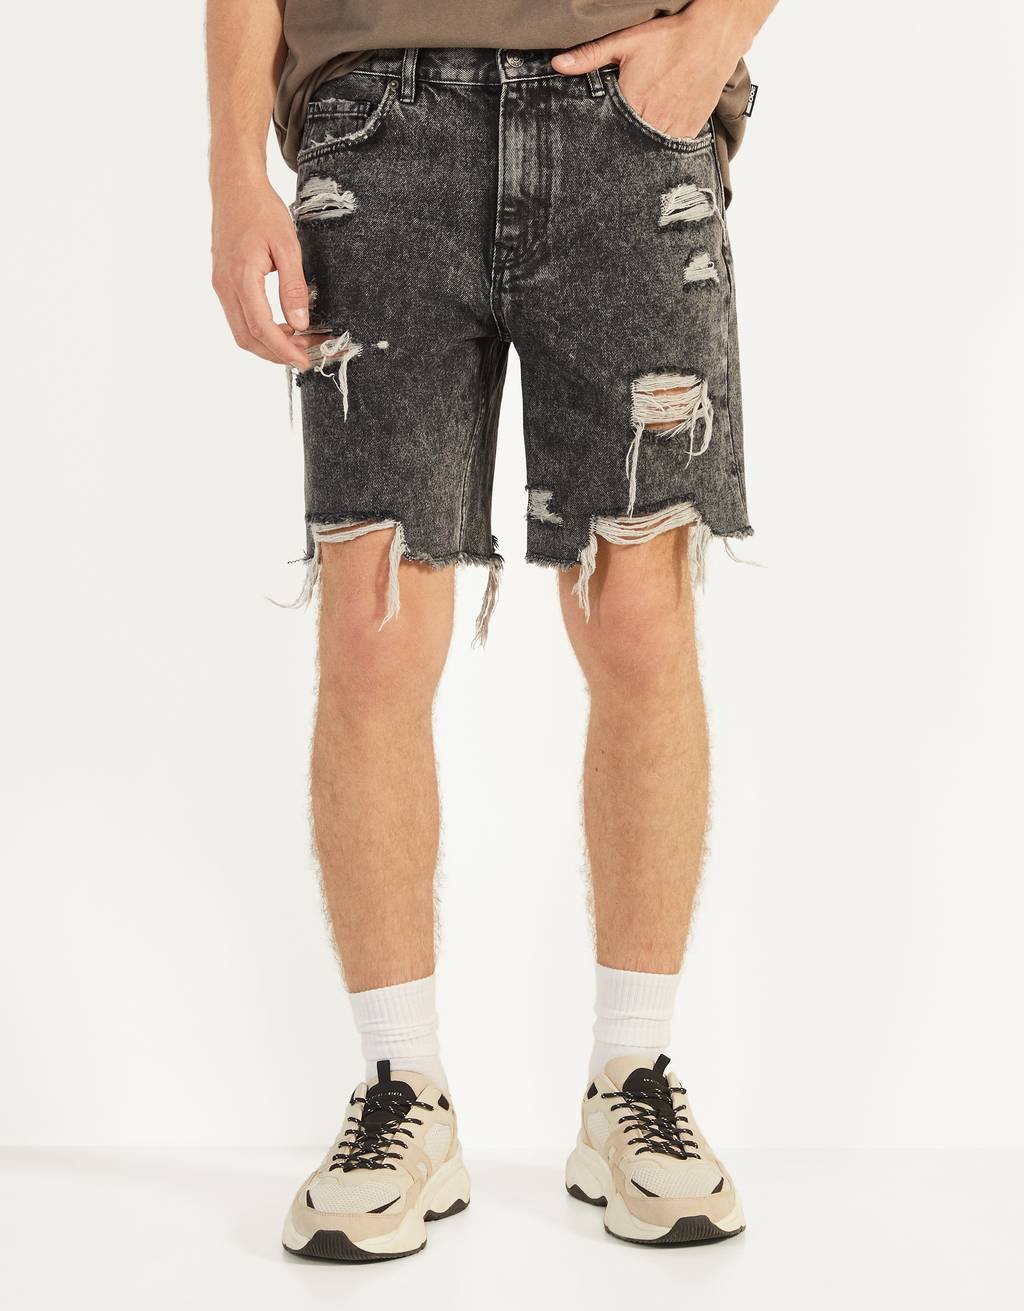 Ripped denim Bermuda shorts